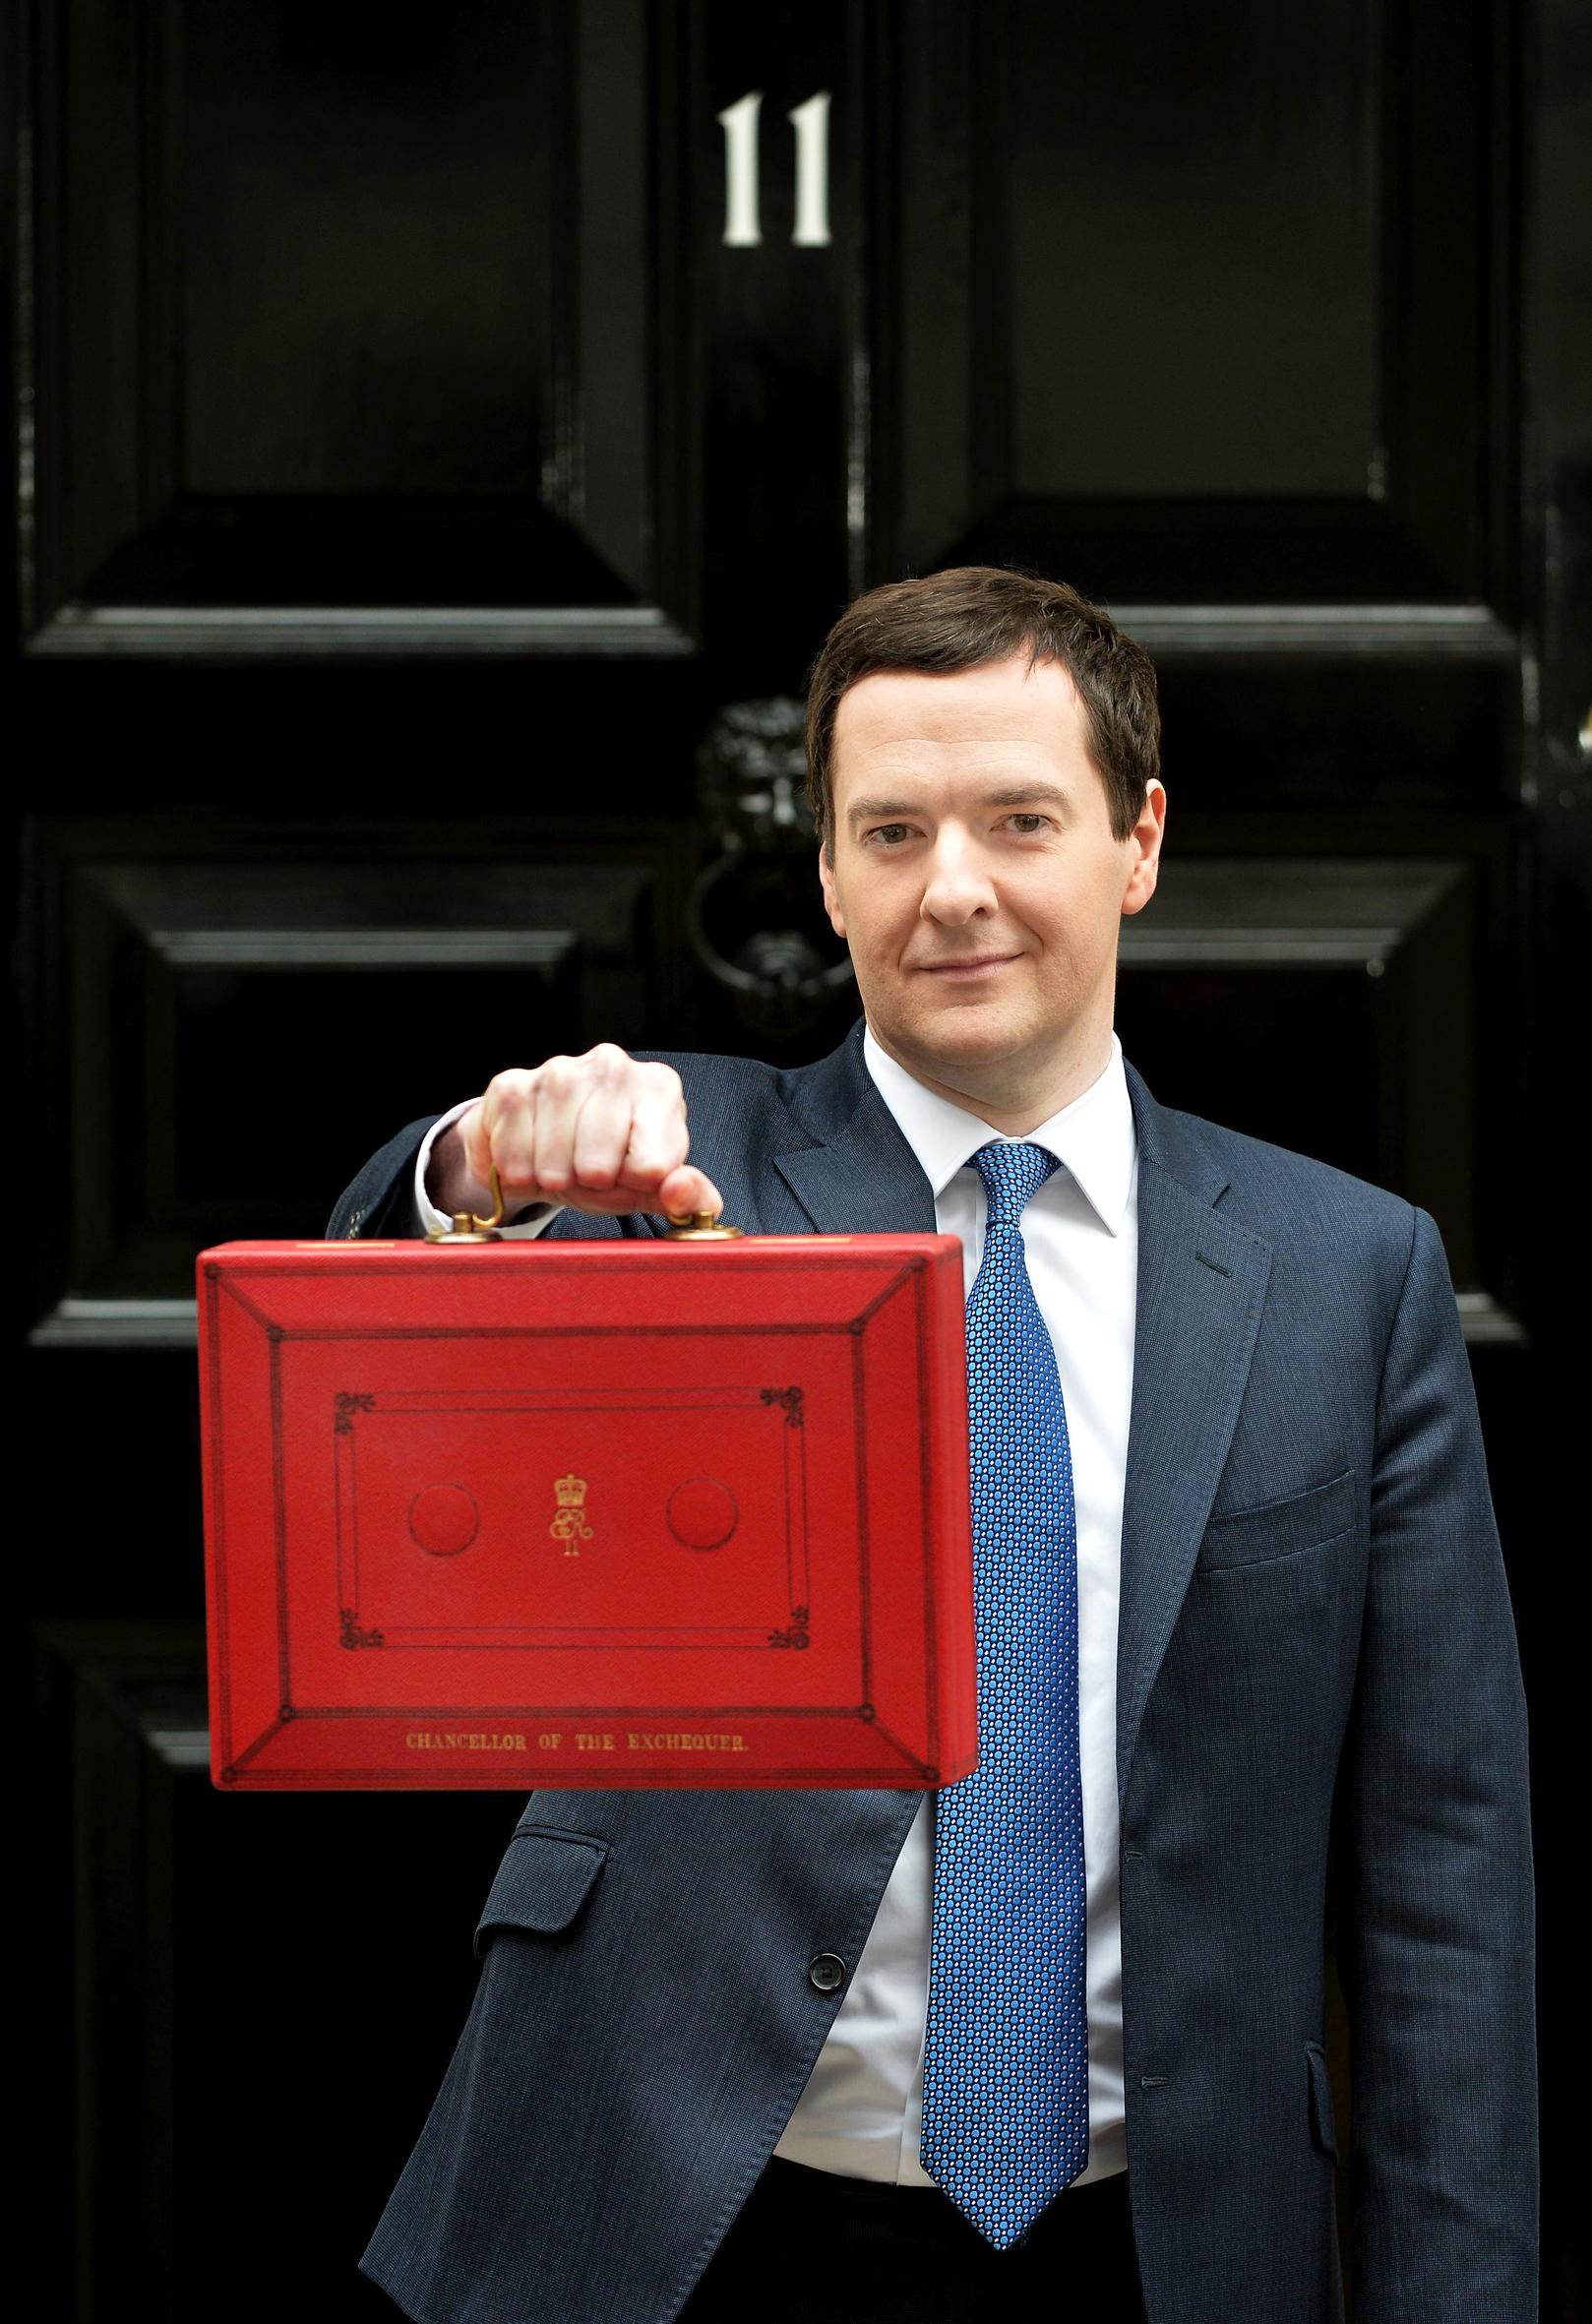 The Budget: The only time when a red briefcase looks normal.